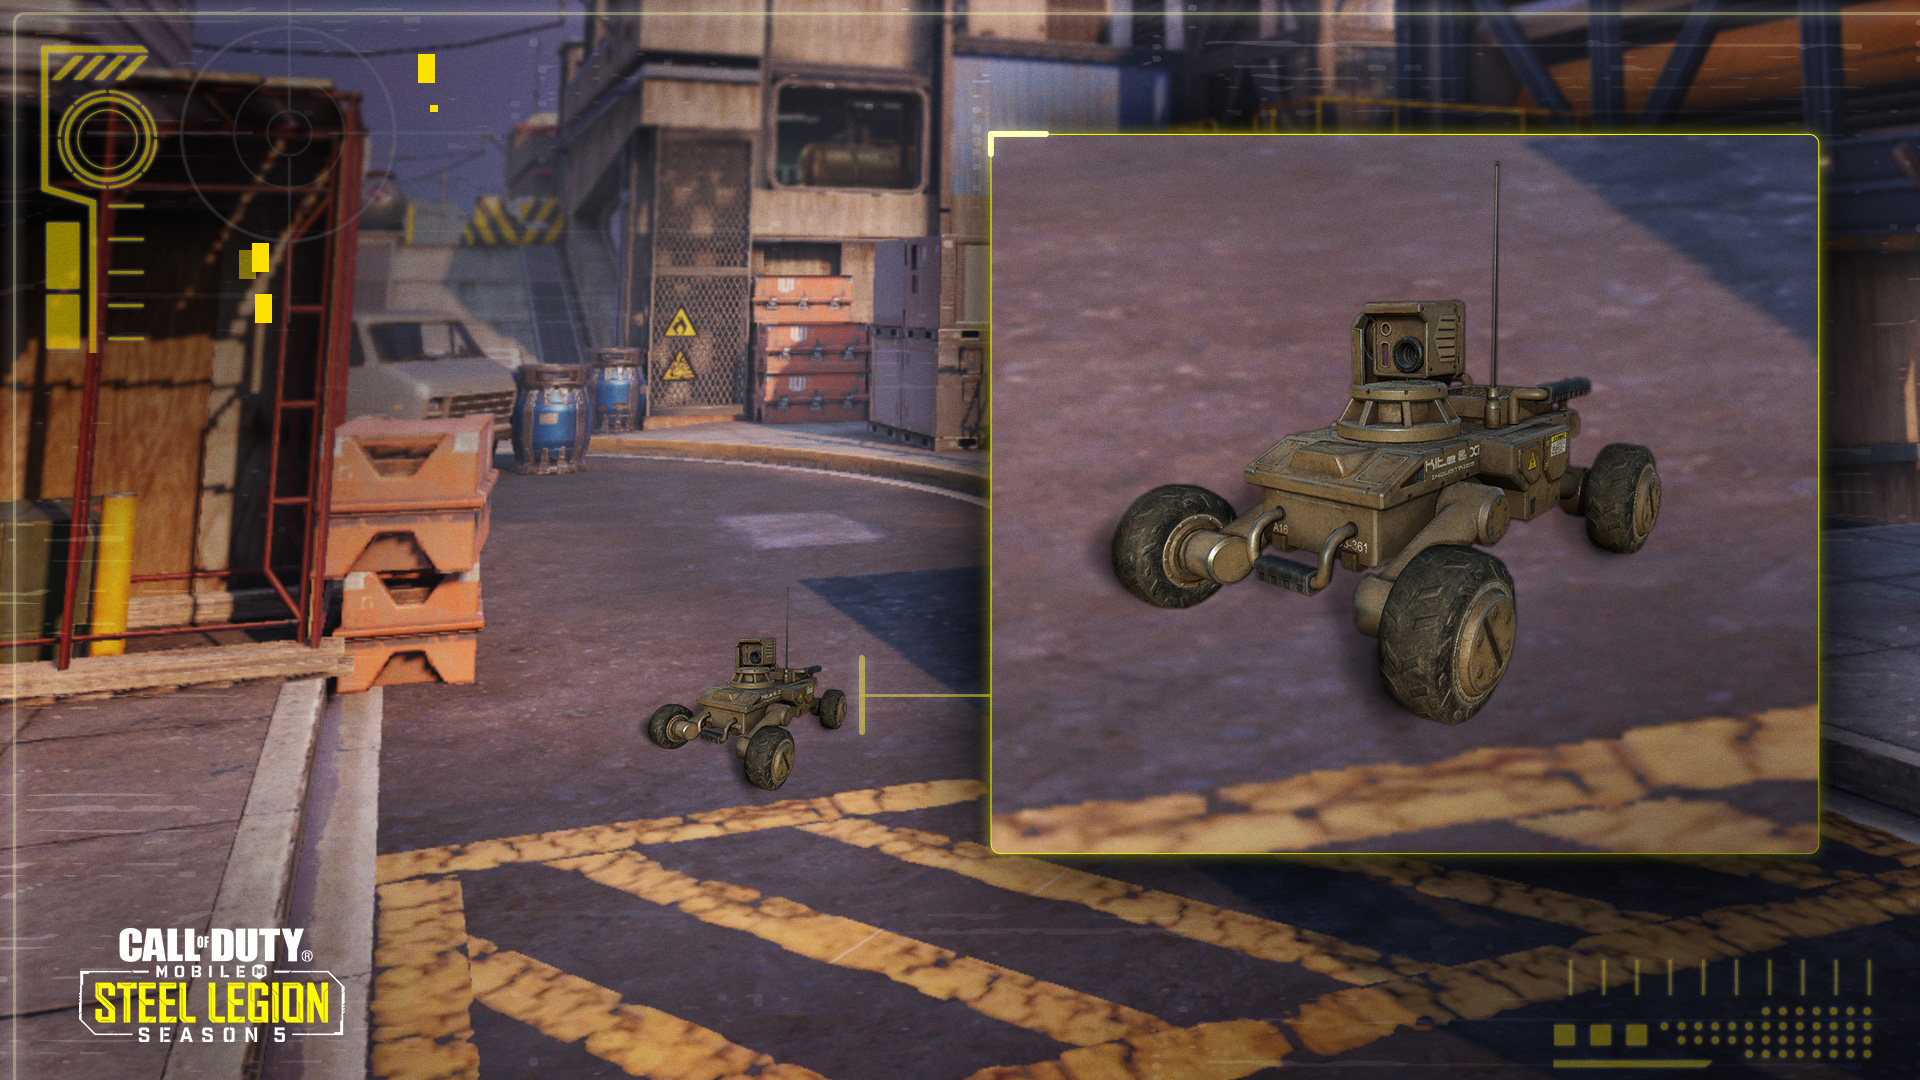 This Week in Call of Duty® - April 27 - Image 8